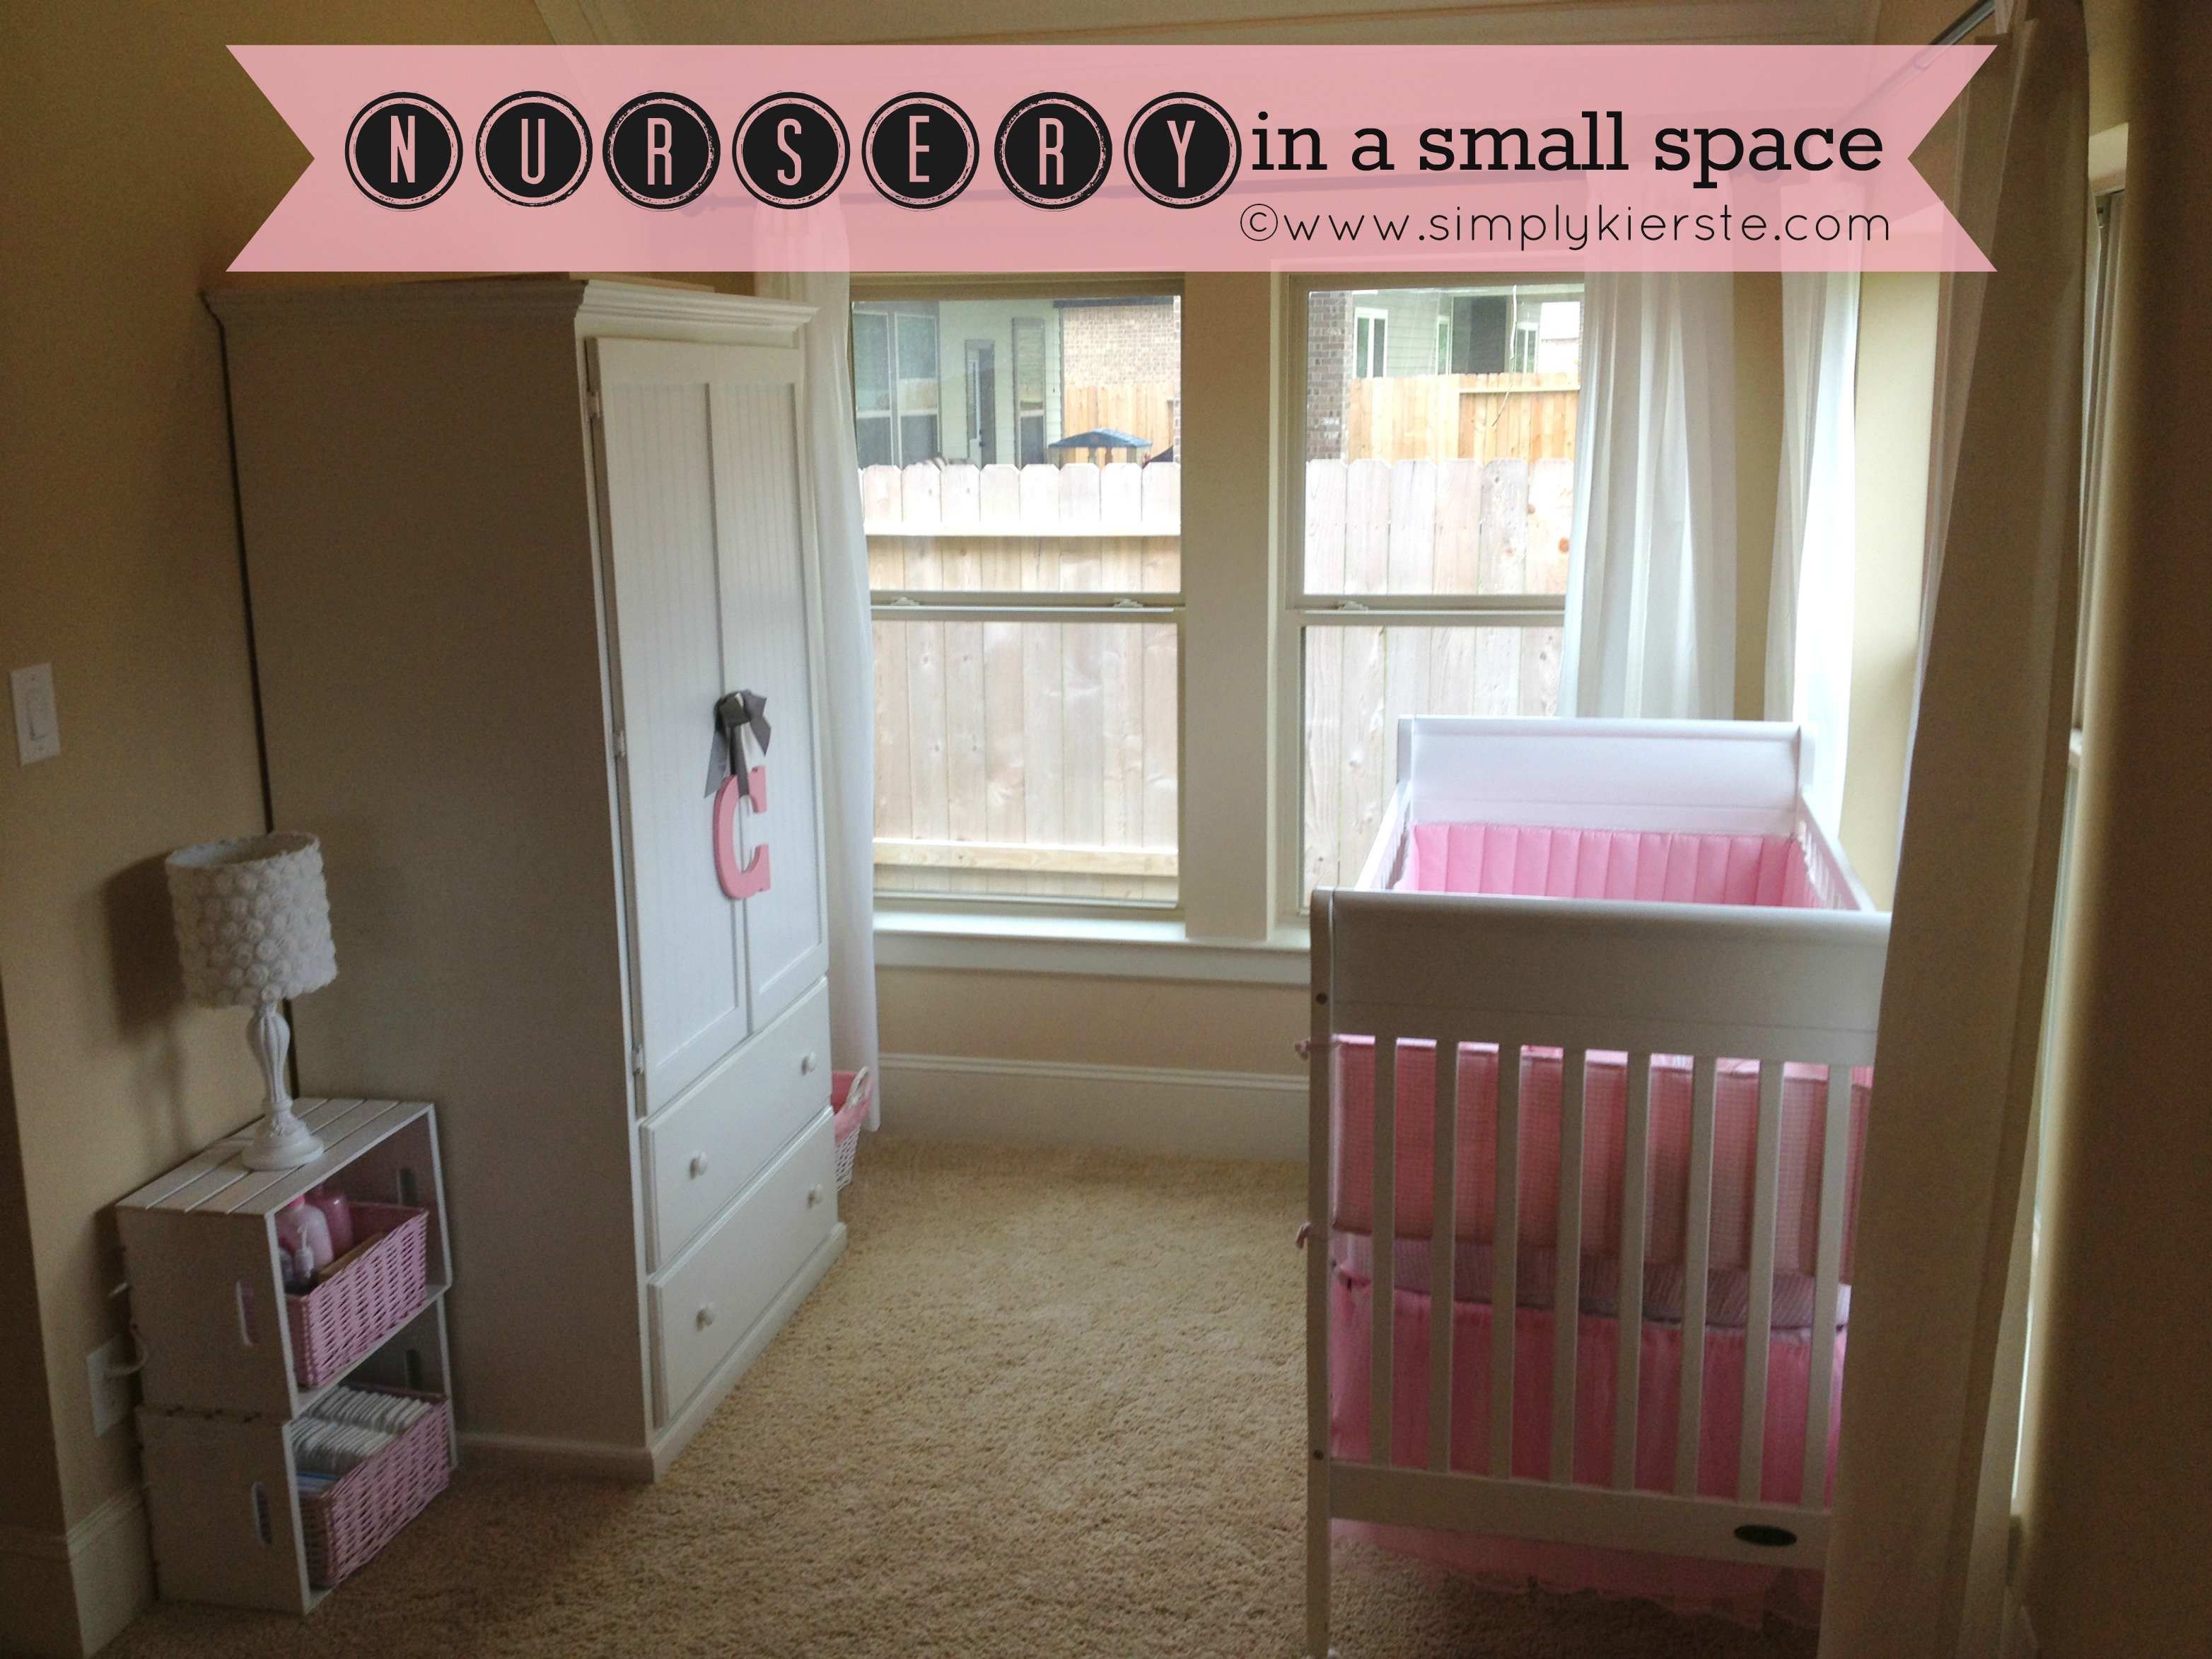 Nursery in a Small Space | simplykierste.